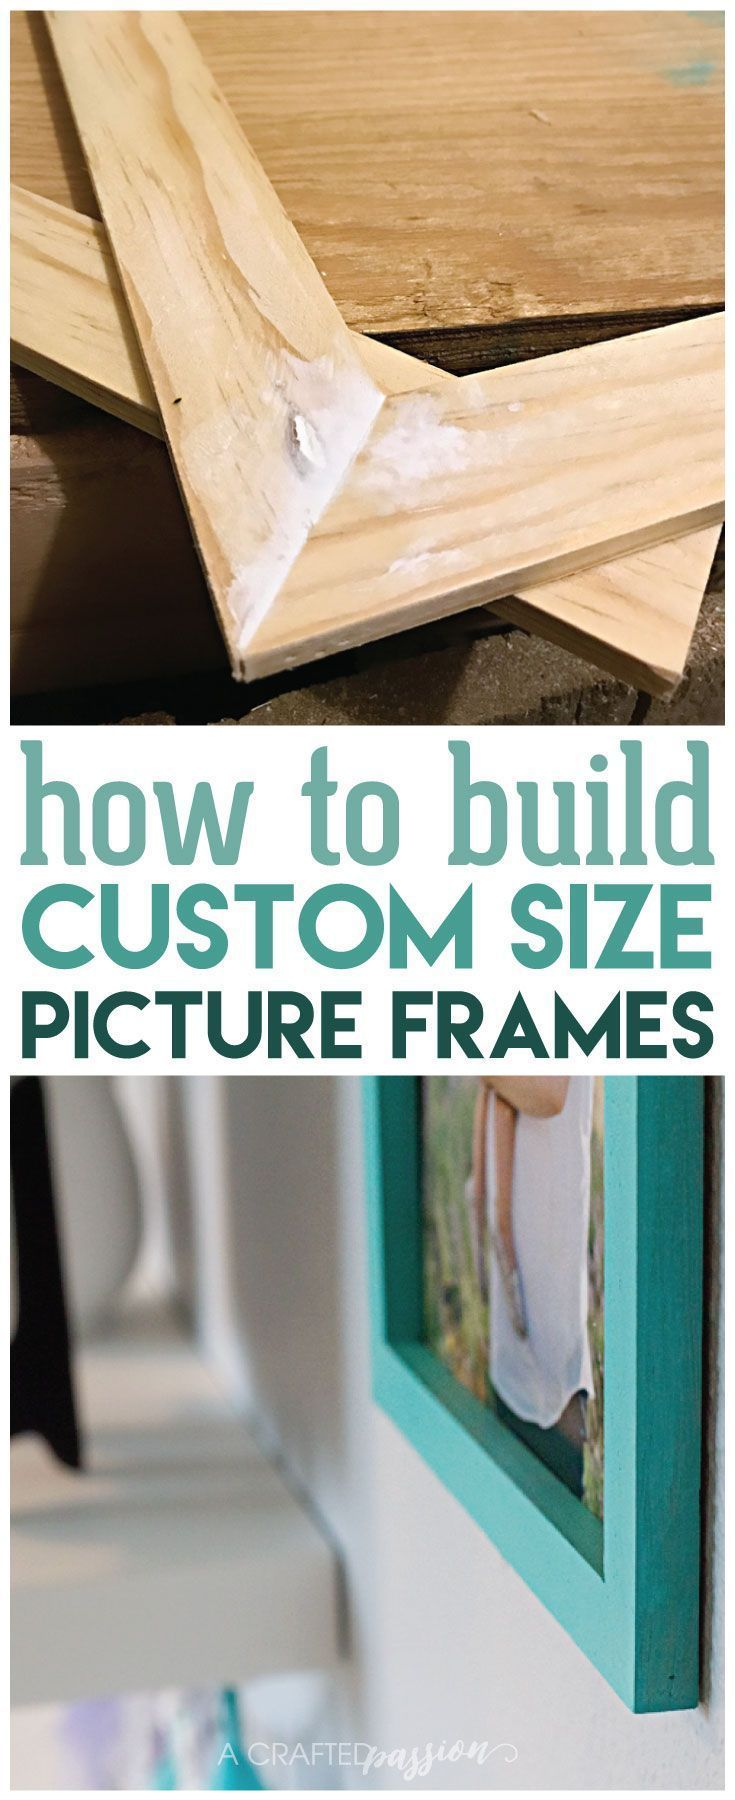 How to Build an Easy Custom Size Picture Frame | Pinterest ...